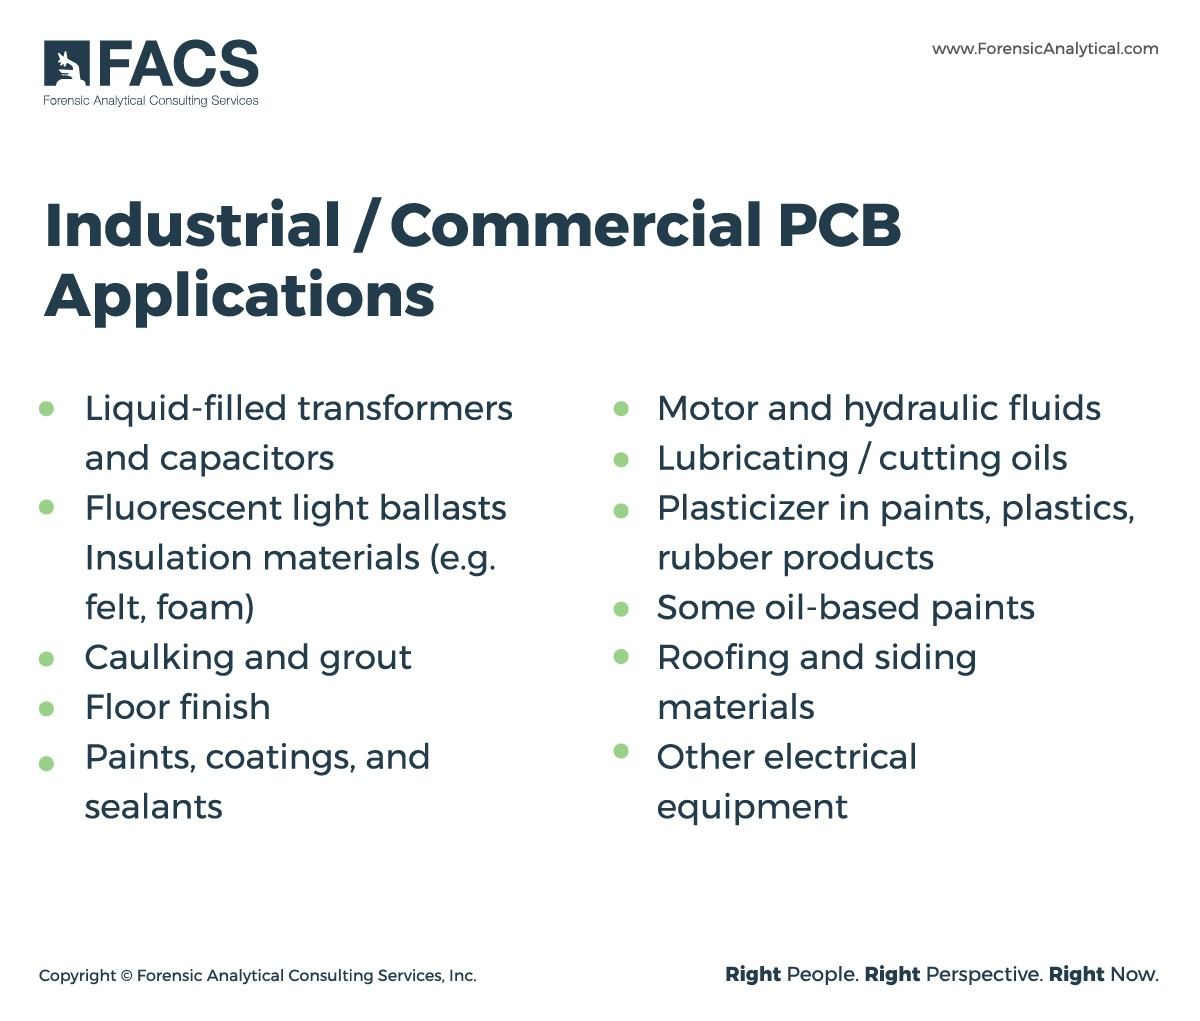 Industrial/Commercial PCB Applications